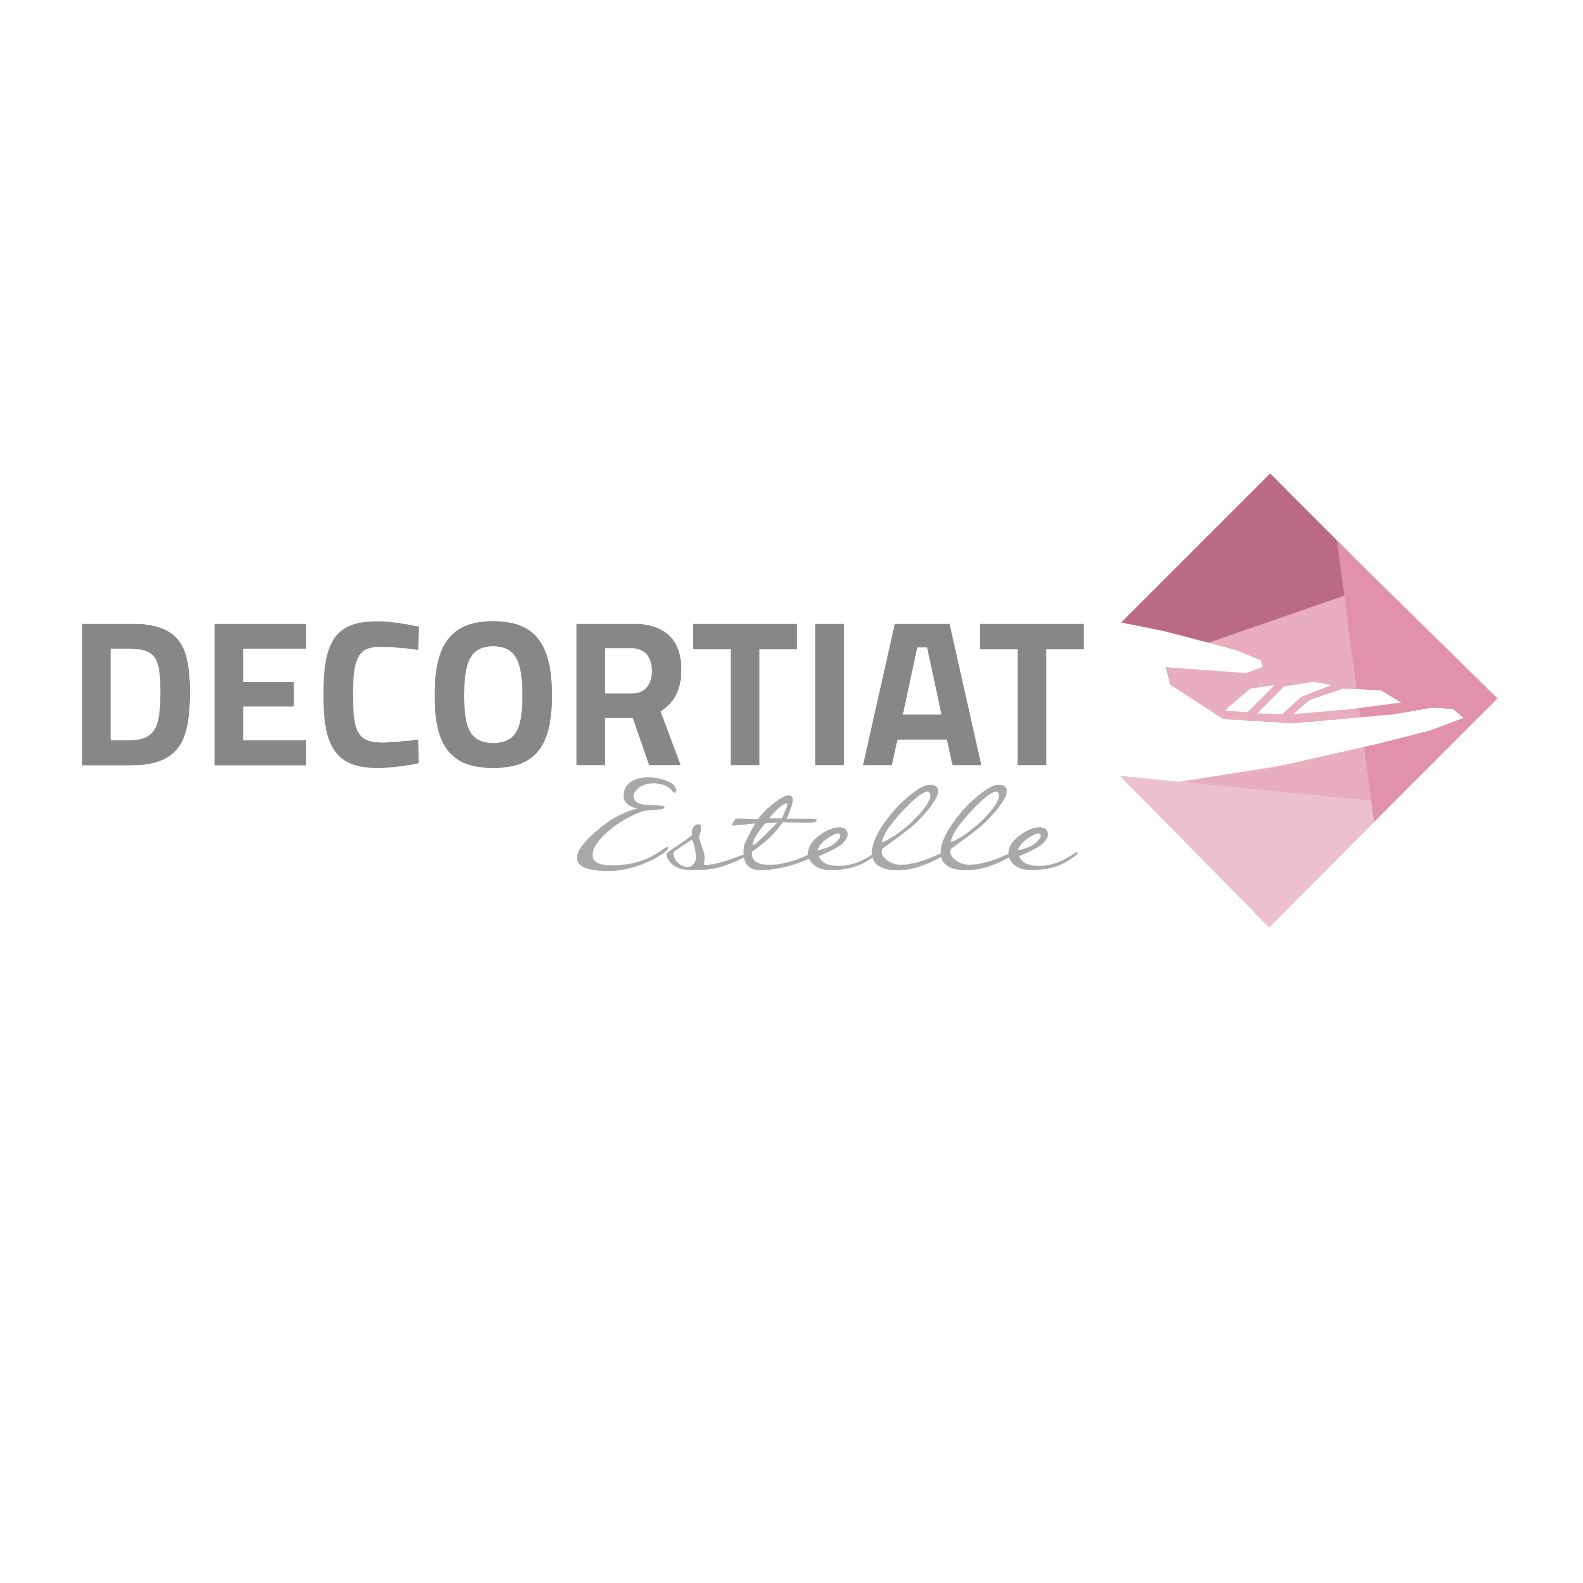 DECORTIAT ESTELLE